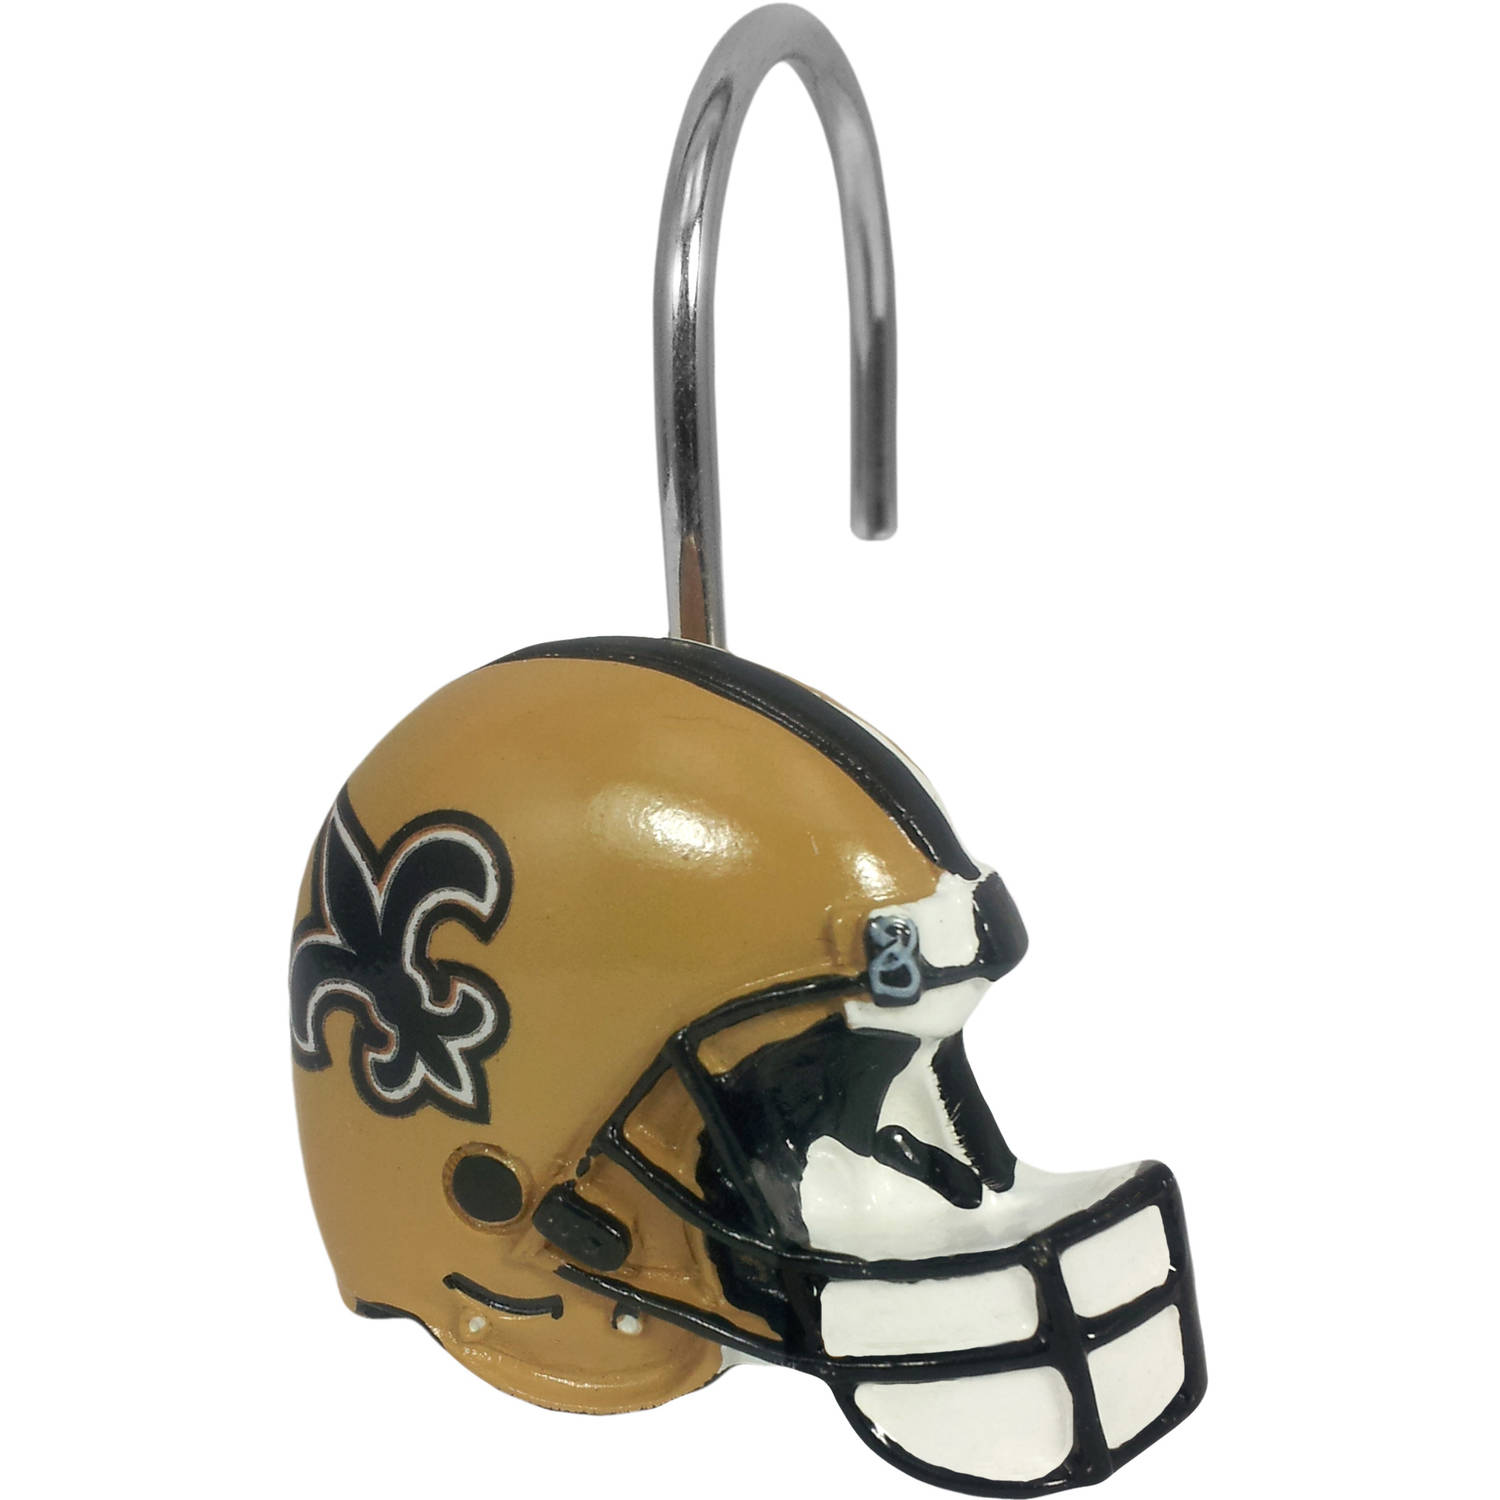 NFL New Oreans Saints Decorative Bath Collection - 12pc Shower Hooks